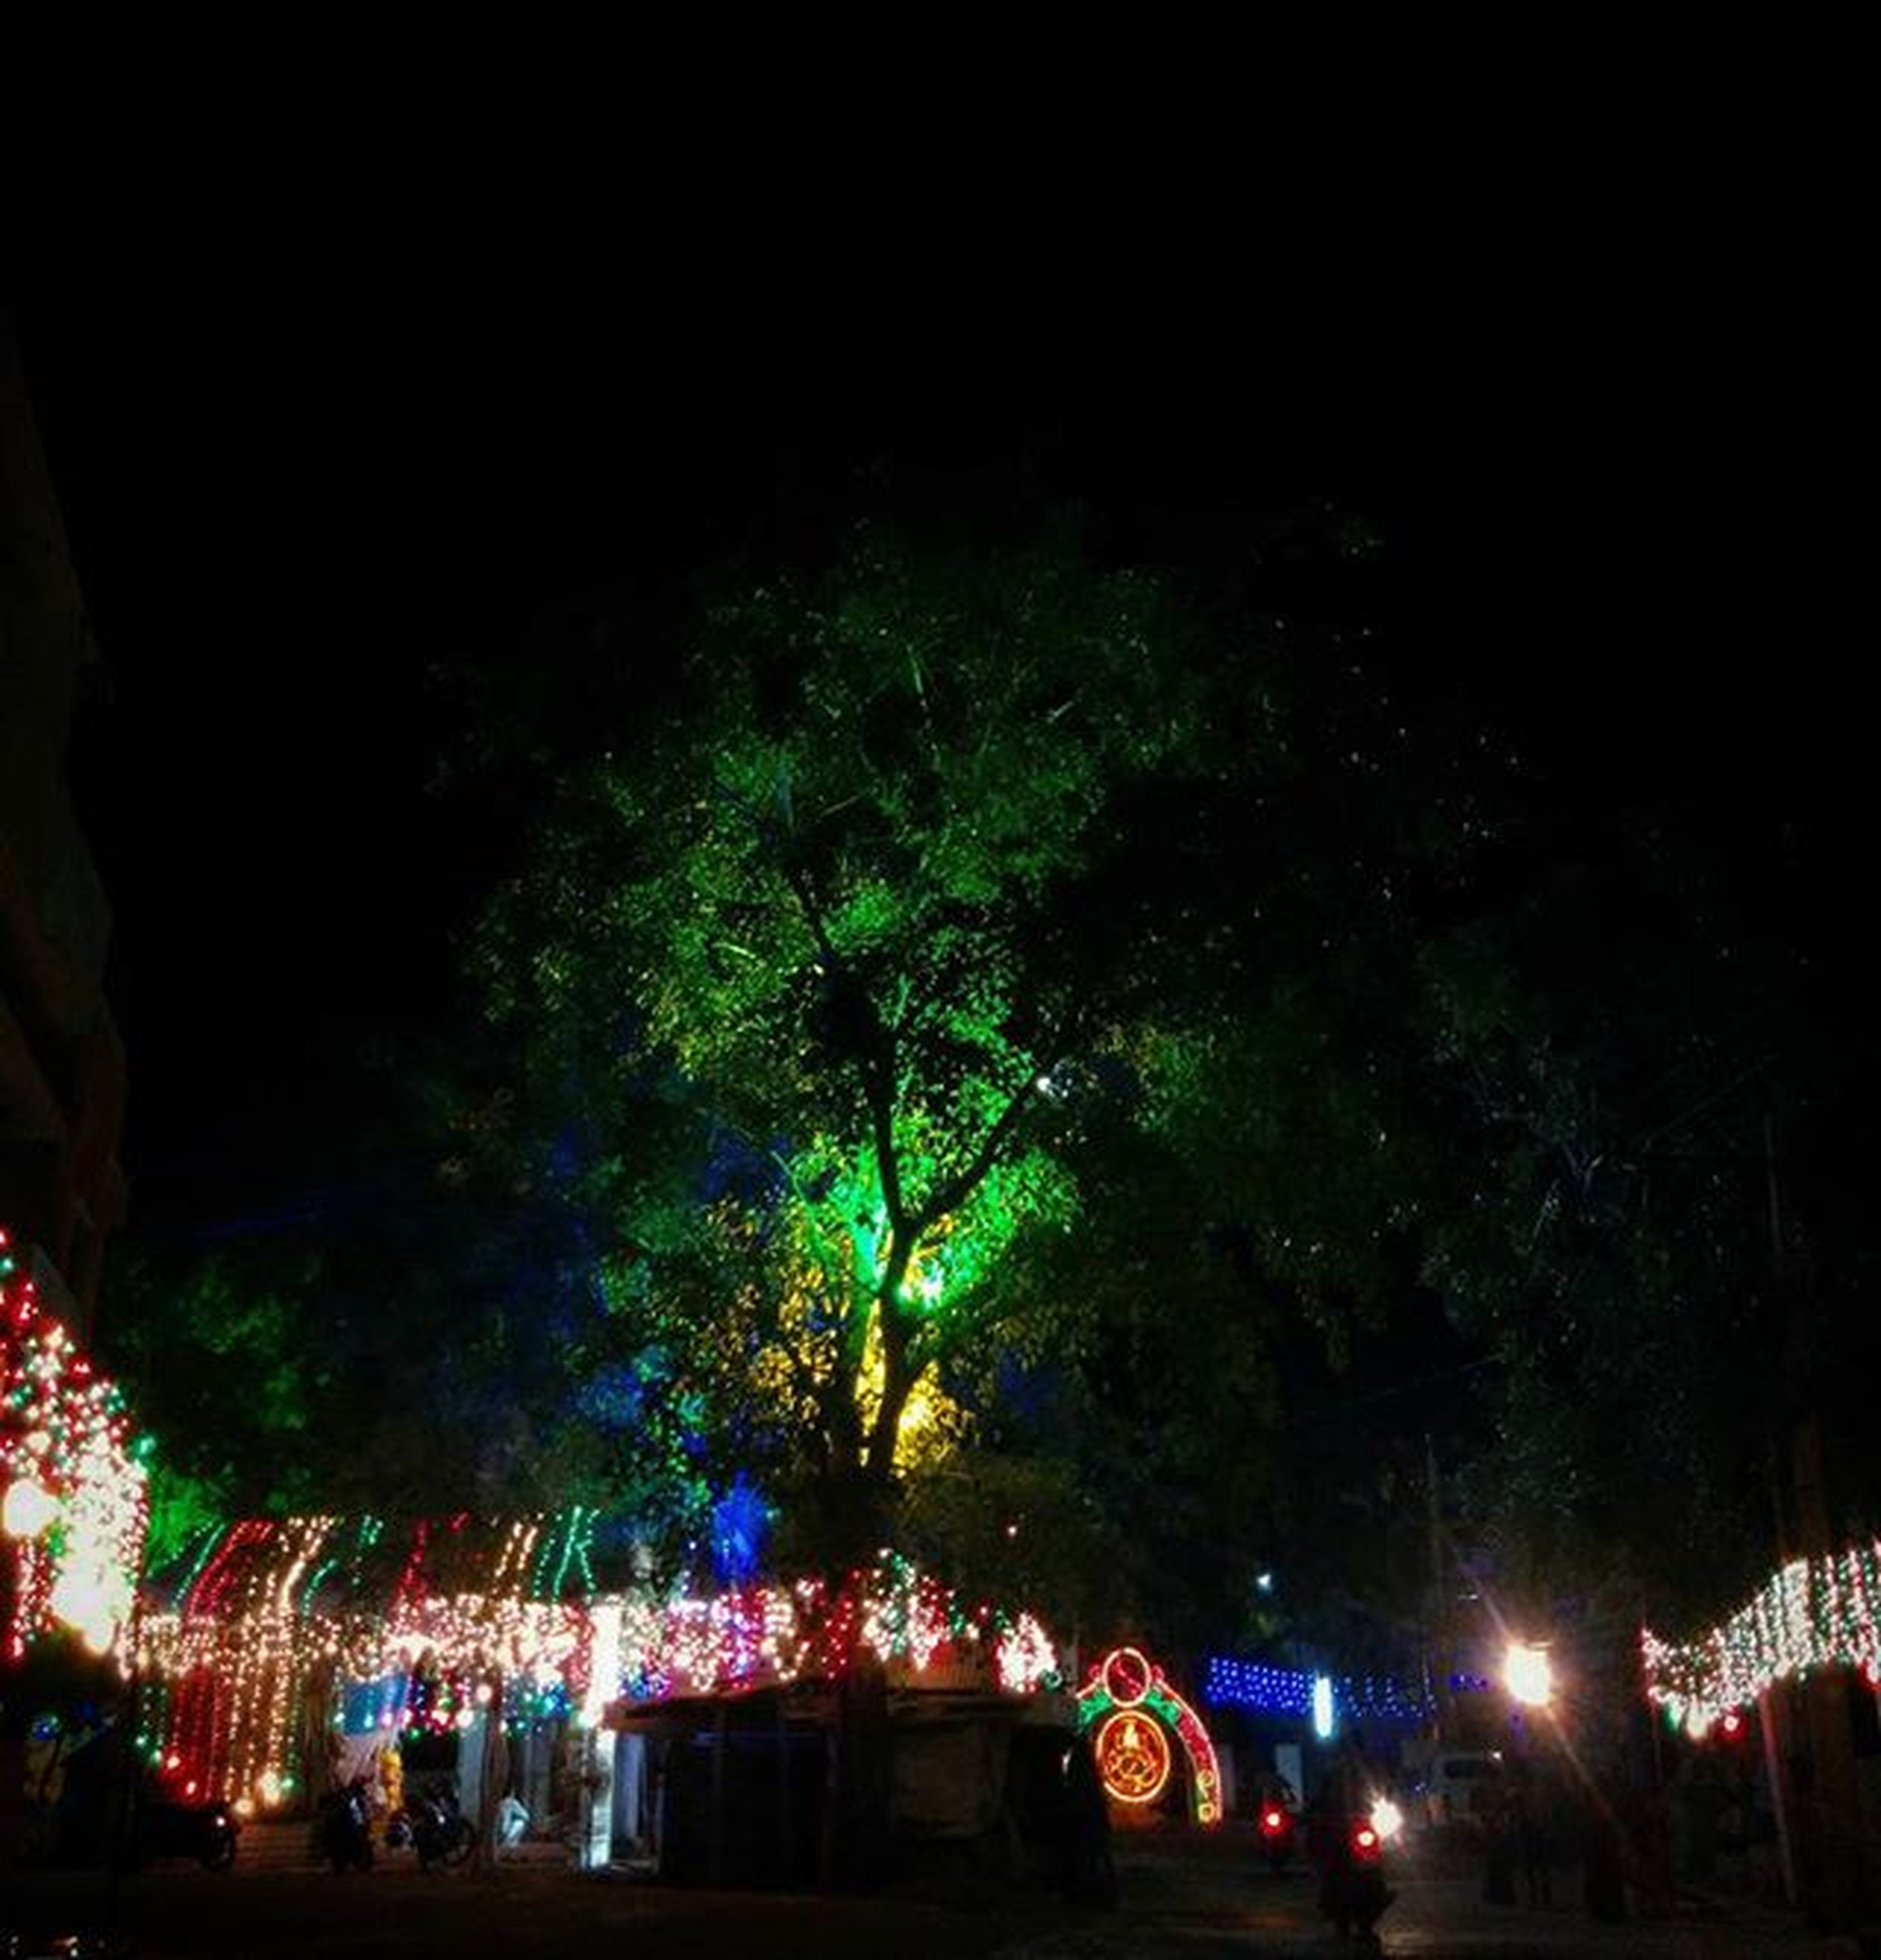 night, illuminated, tree, lighting equipment, street light, low angle view, building exterior, sky, built structure, light - natural phenomenon, outdoors, street, celebration, clear sky, city, dark, incidental people, architecture, large group of people